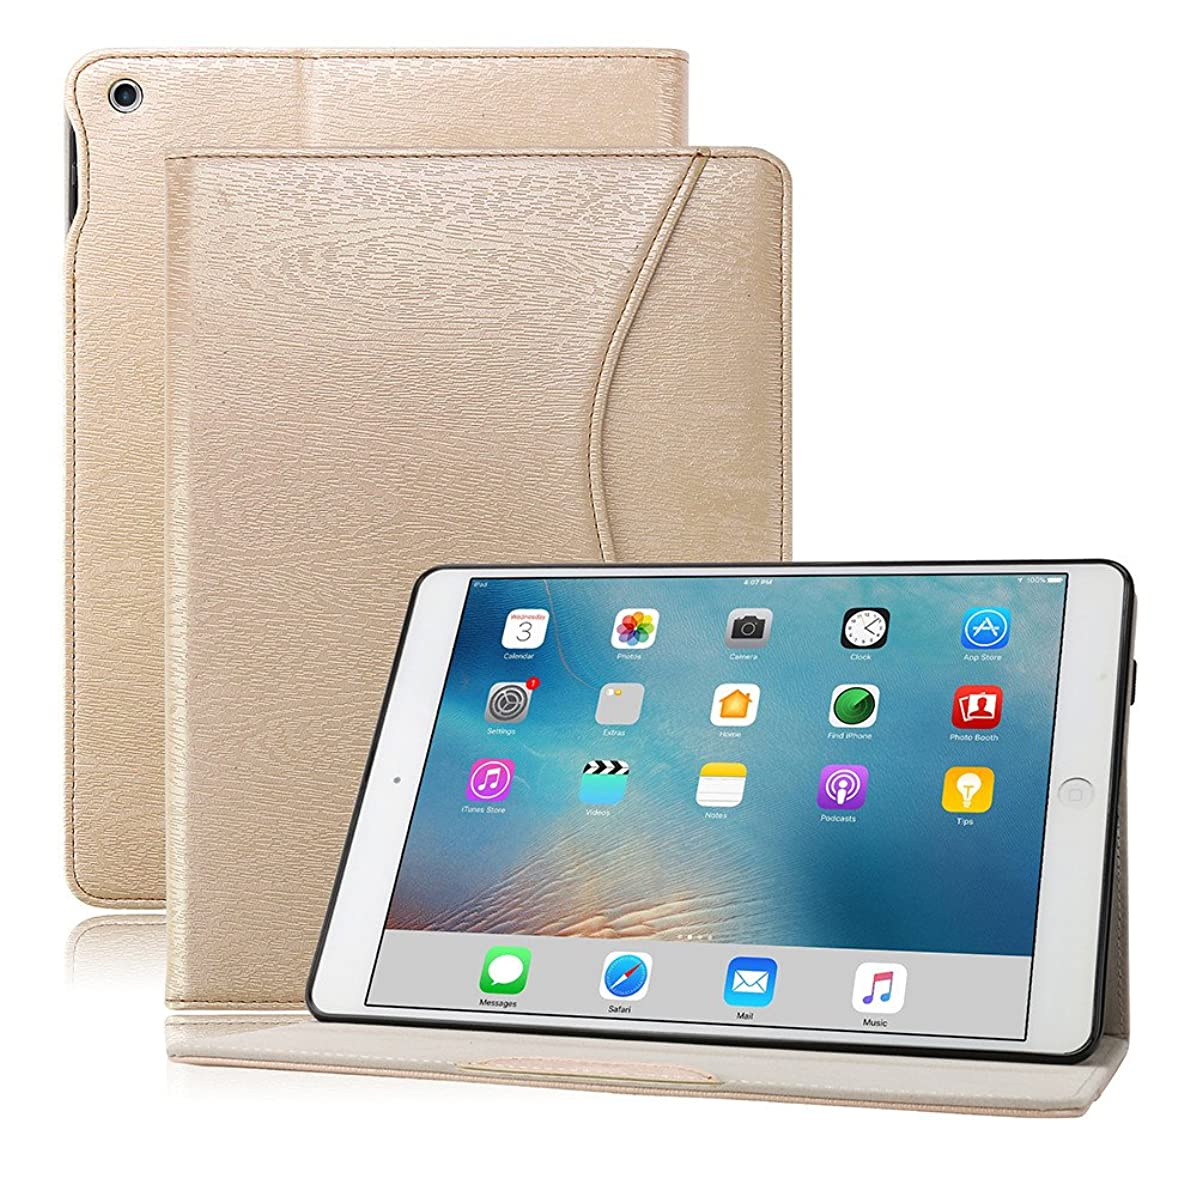 iPad 9.7 Case for 2018 iPad 6th Generation, 2017 iPad 5th Generation, iPad Pro 9.7, iPad Air 2, iPad Air, PU Leather, Ultra Slim Lightweight Stand, Smart Cover for iPad 9.7 Inch (Gold)